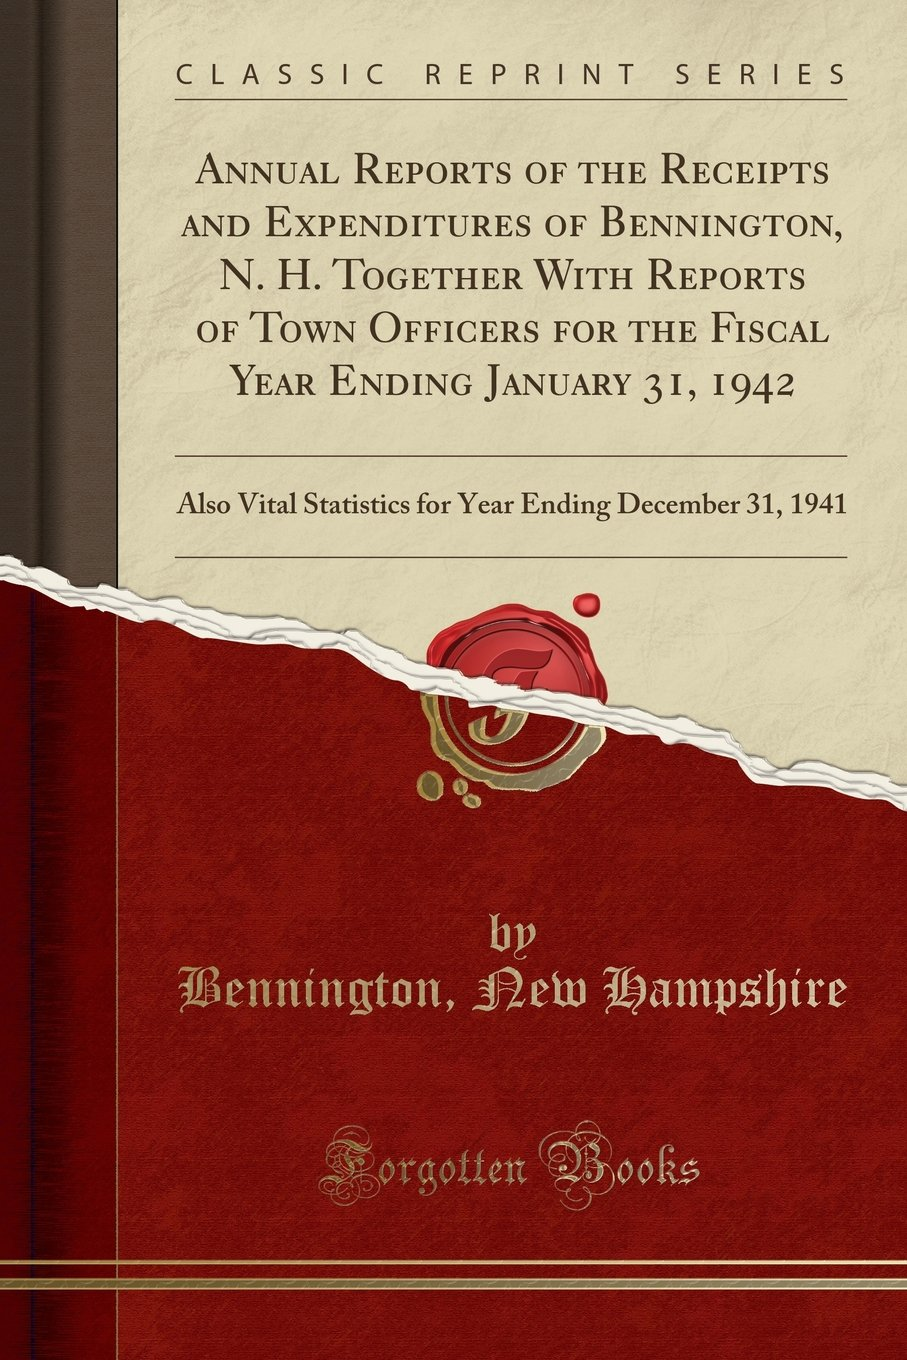 Read Online Annual Reports of the Receipts and Expenditures of Bennington, N. H. Together With Reports of Town Officers for the Fiscal Year Ending January 31, ... Ending December 31, 1941 (Classic Reprint) ebook